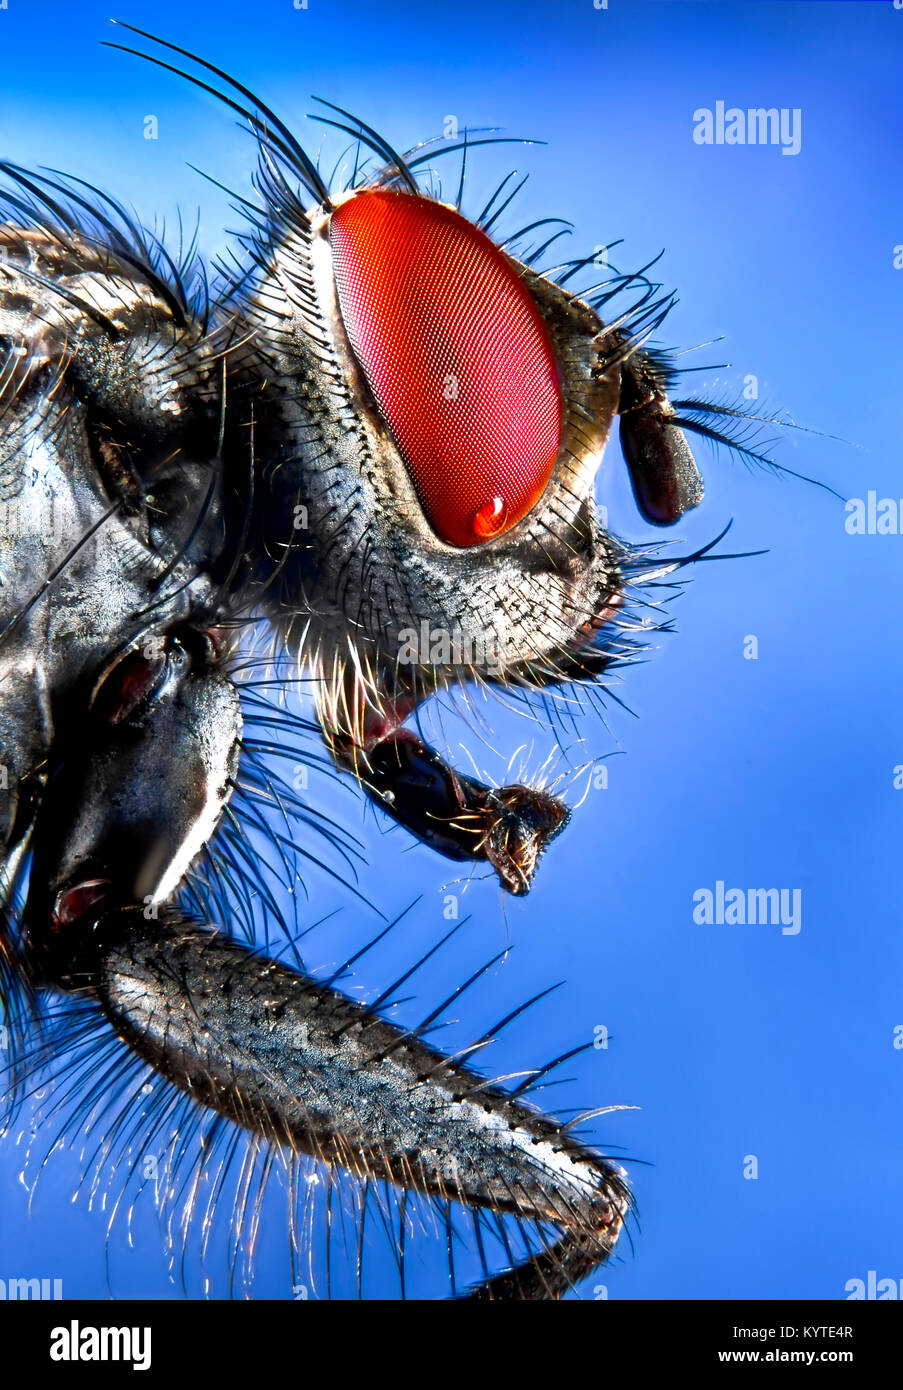 Flesh Fly side view detailing the compound eye, antenna, head and foreleg in ultra-close-up with a large depth of - Stock Image